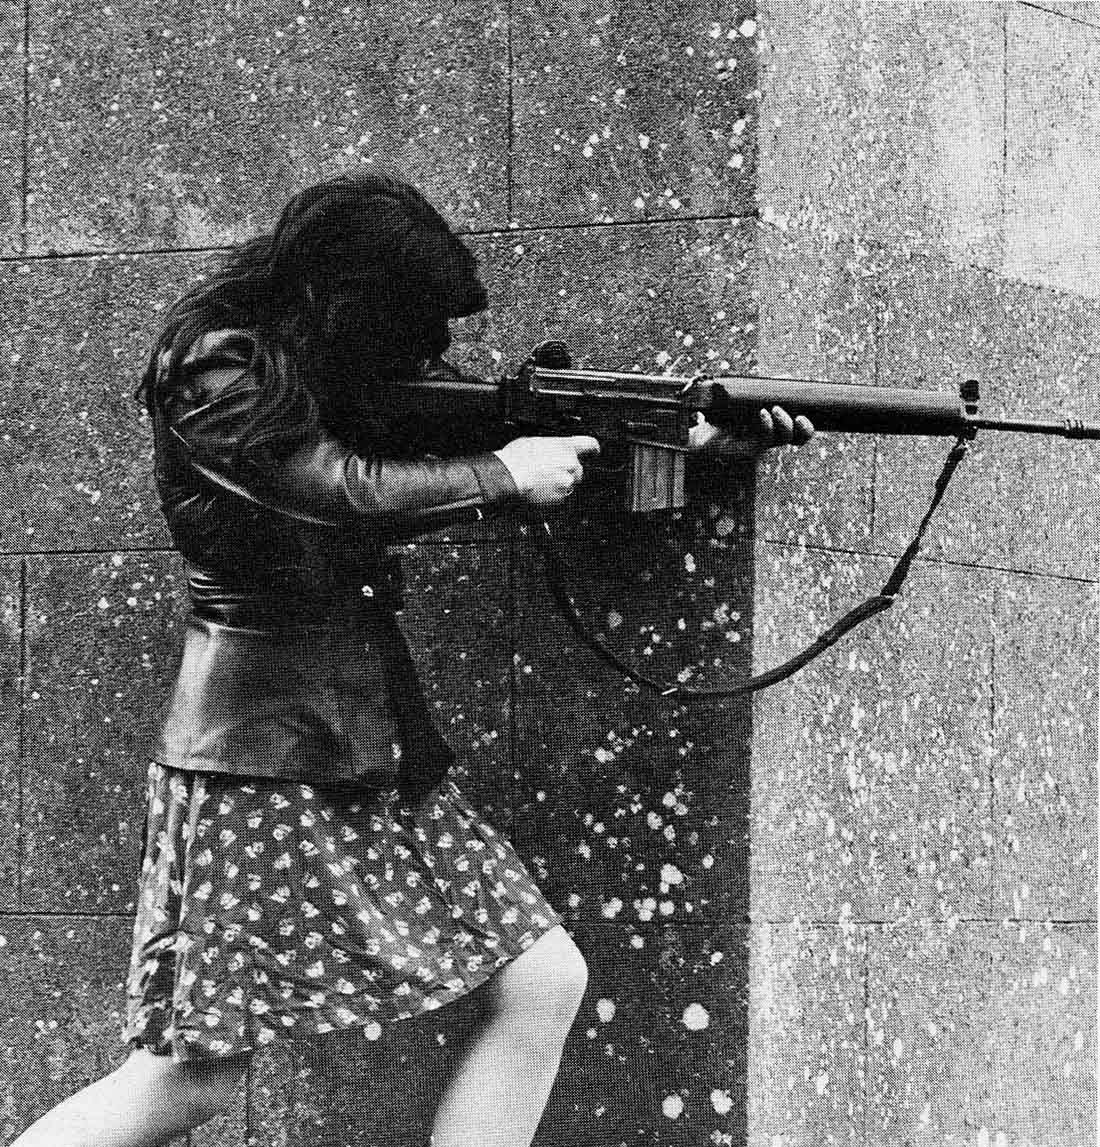 Female IRA fighter, 1970s - Rare Historical Photos